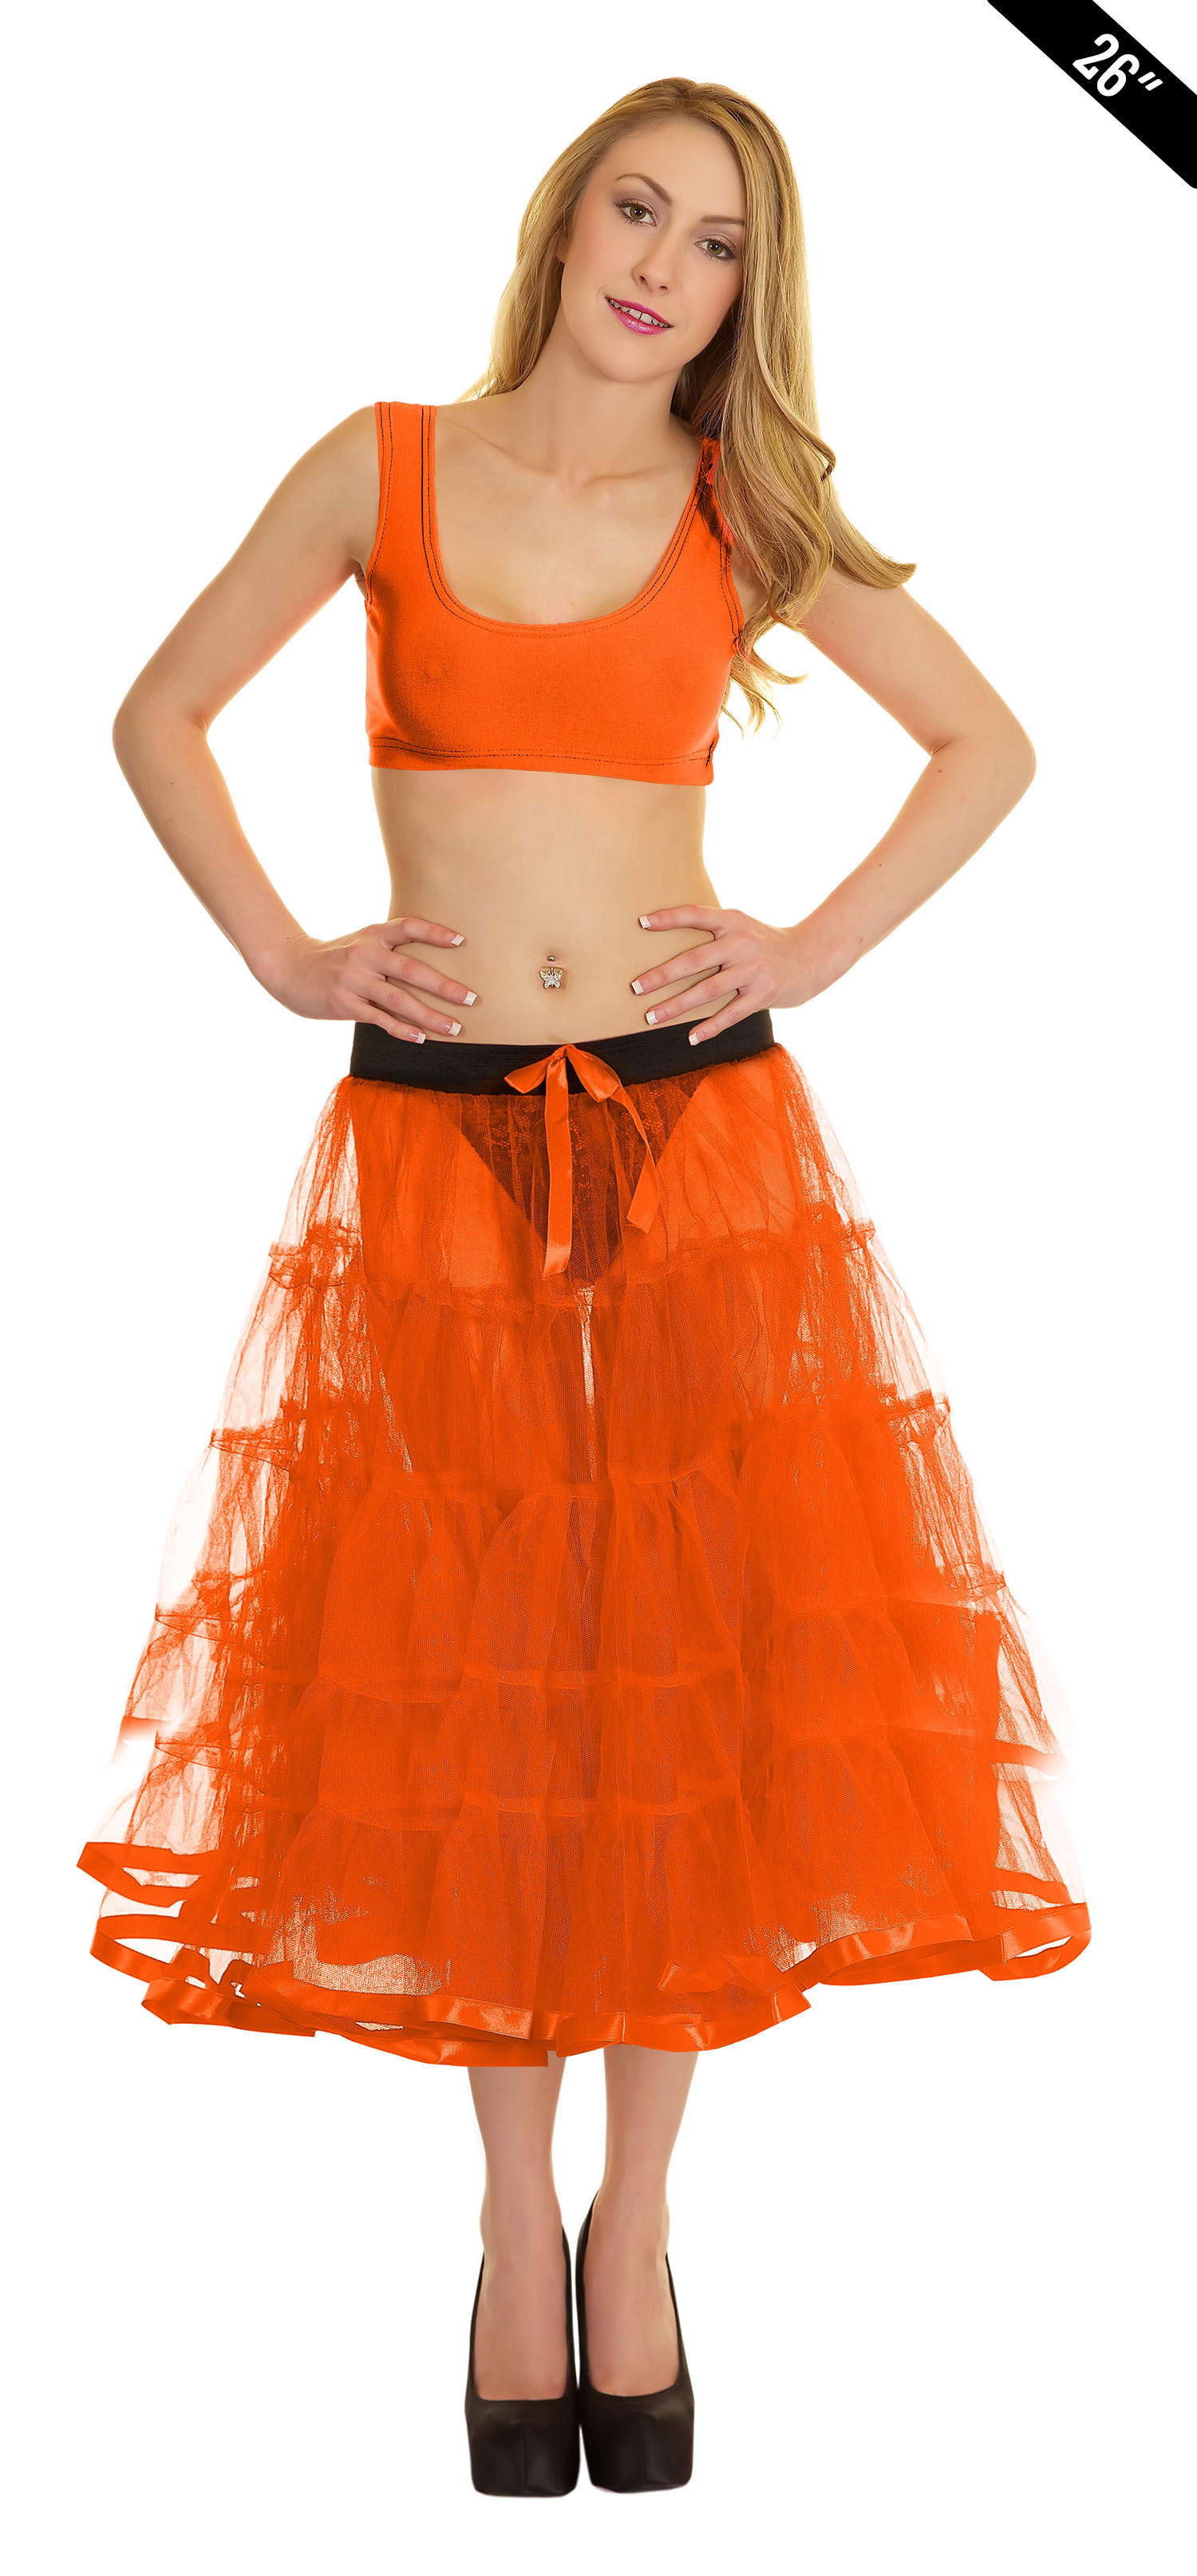 Crazy Chick 5 Tier Petticoat with Ribbon Orange TuTu Skirt (Approximately 26 Inches Long)